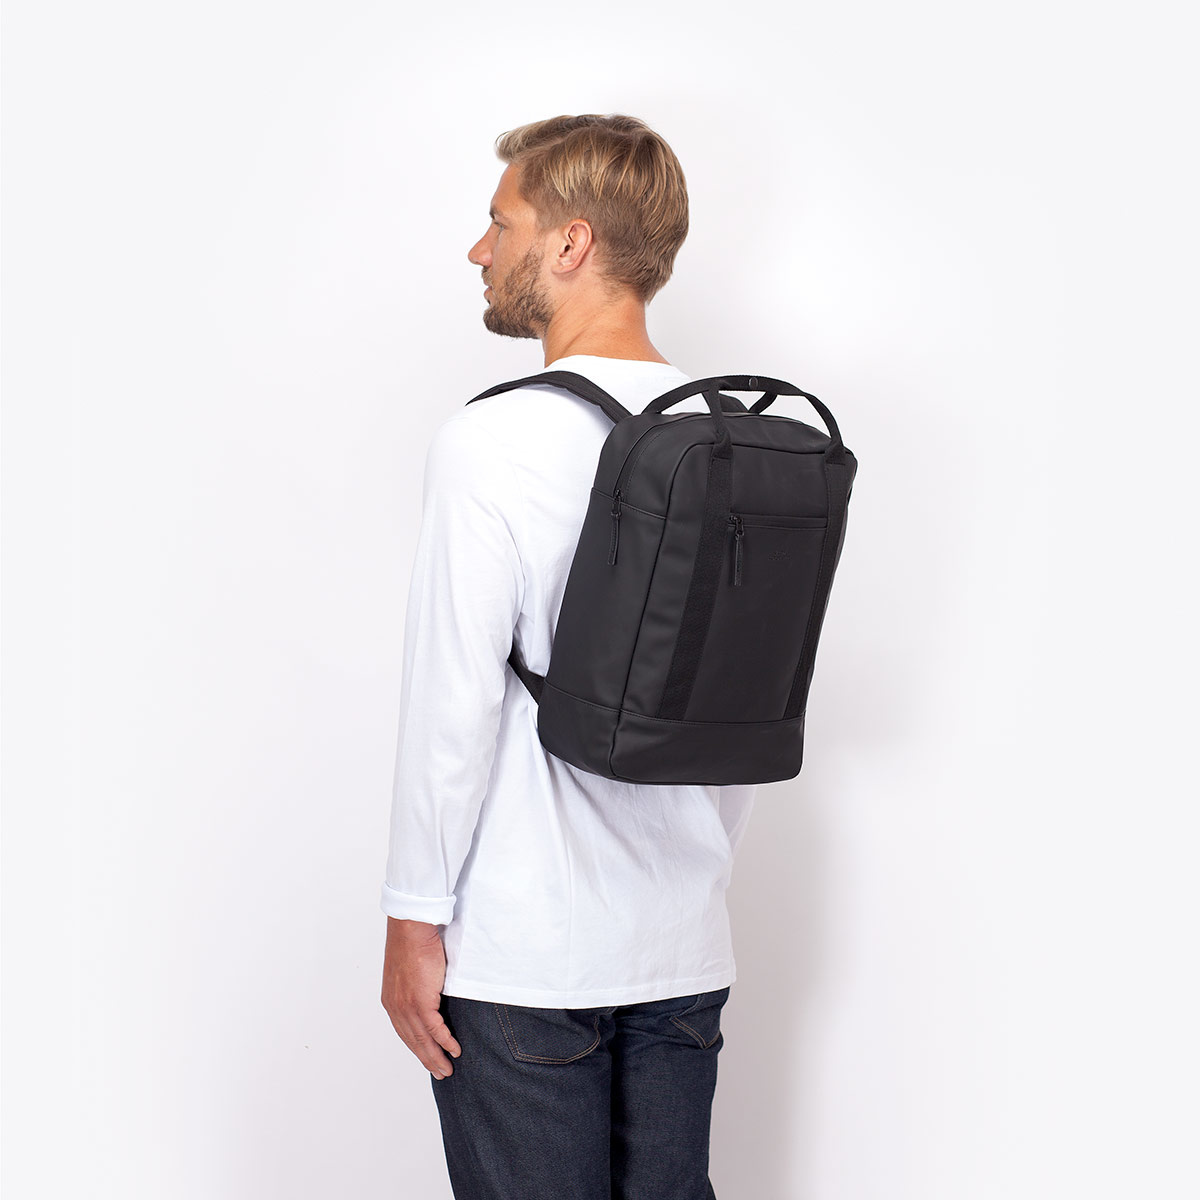 Ucon  Acrobatics Ucon Acrobatics   ISON BACKPACK Lotus  Series black